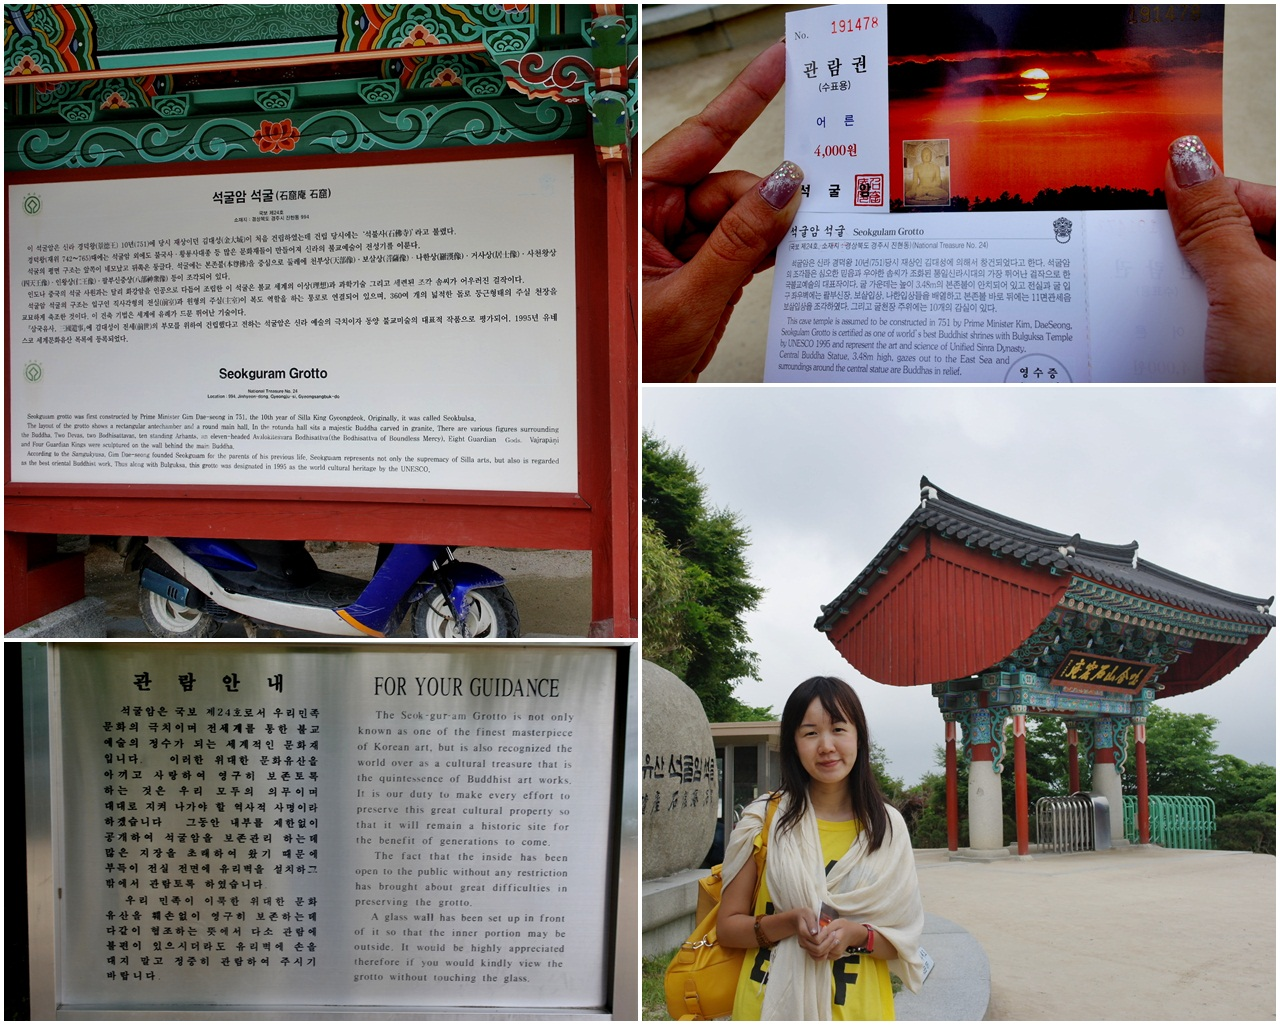 [Gyeongju] Bulguksa Temple and Seokguram Grotto| meheartsoul.blogspot.com